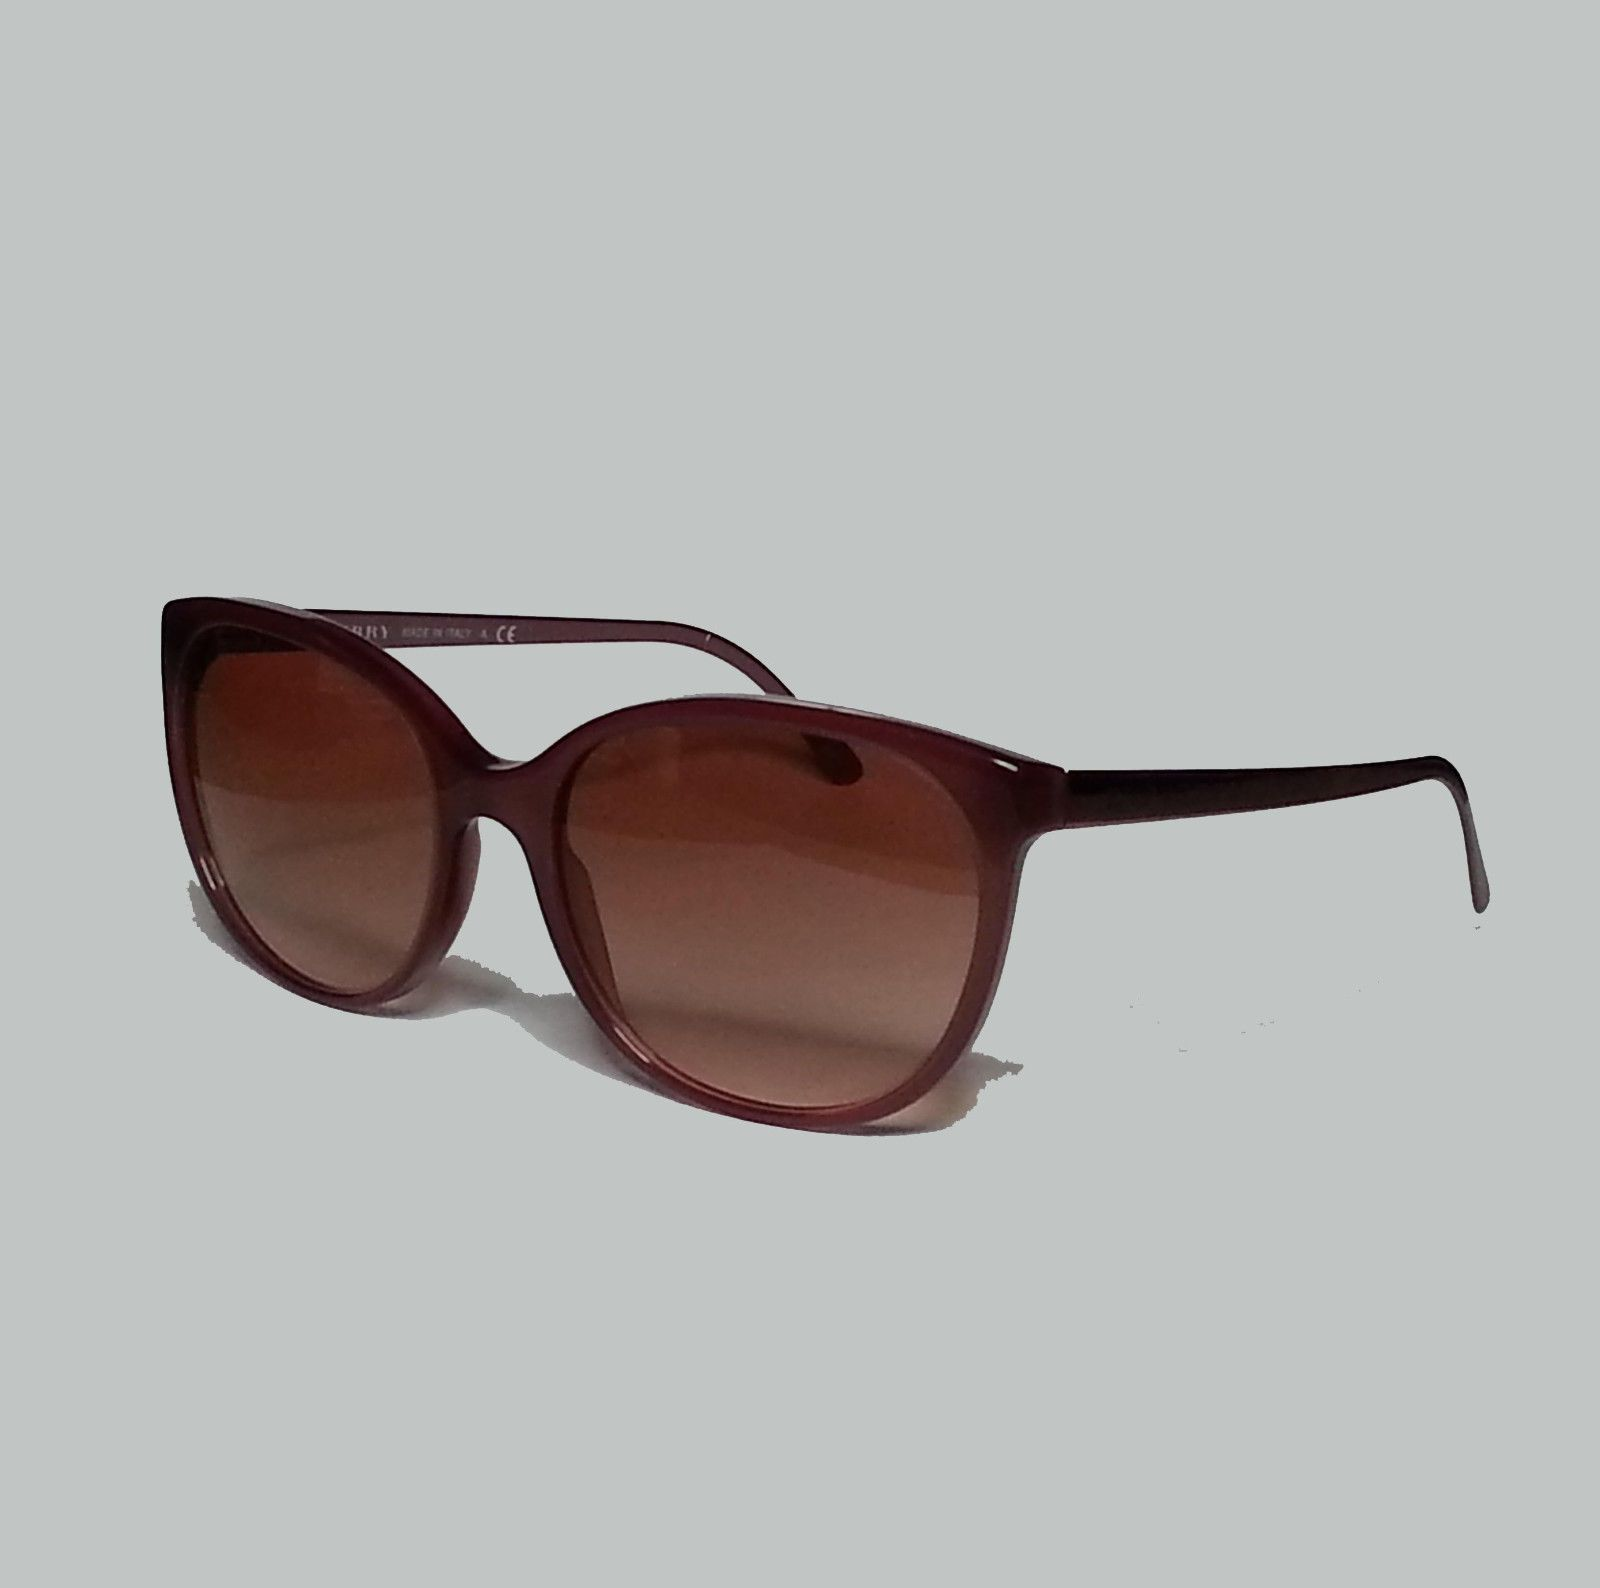 1a82e3568f1f  ebay Burberry women s sunglasses Cat Eye style metal frame made in Italy  B-4146